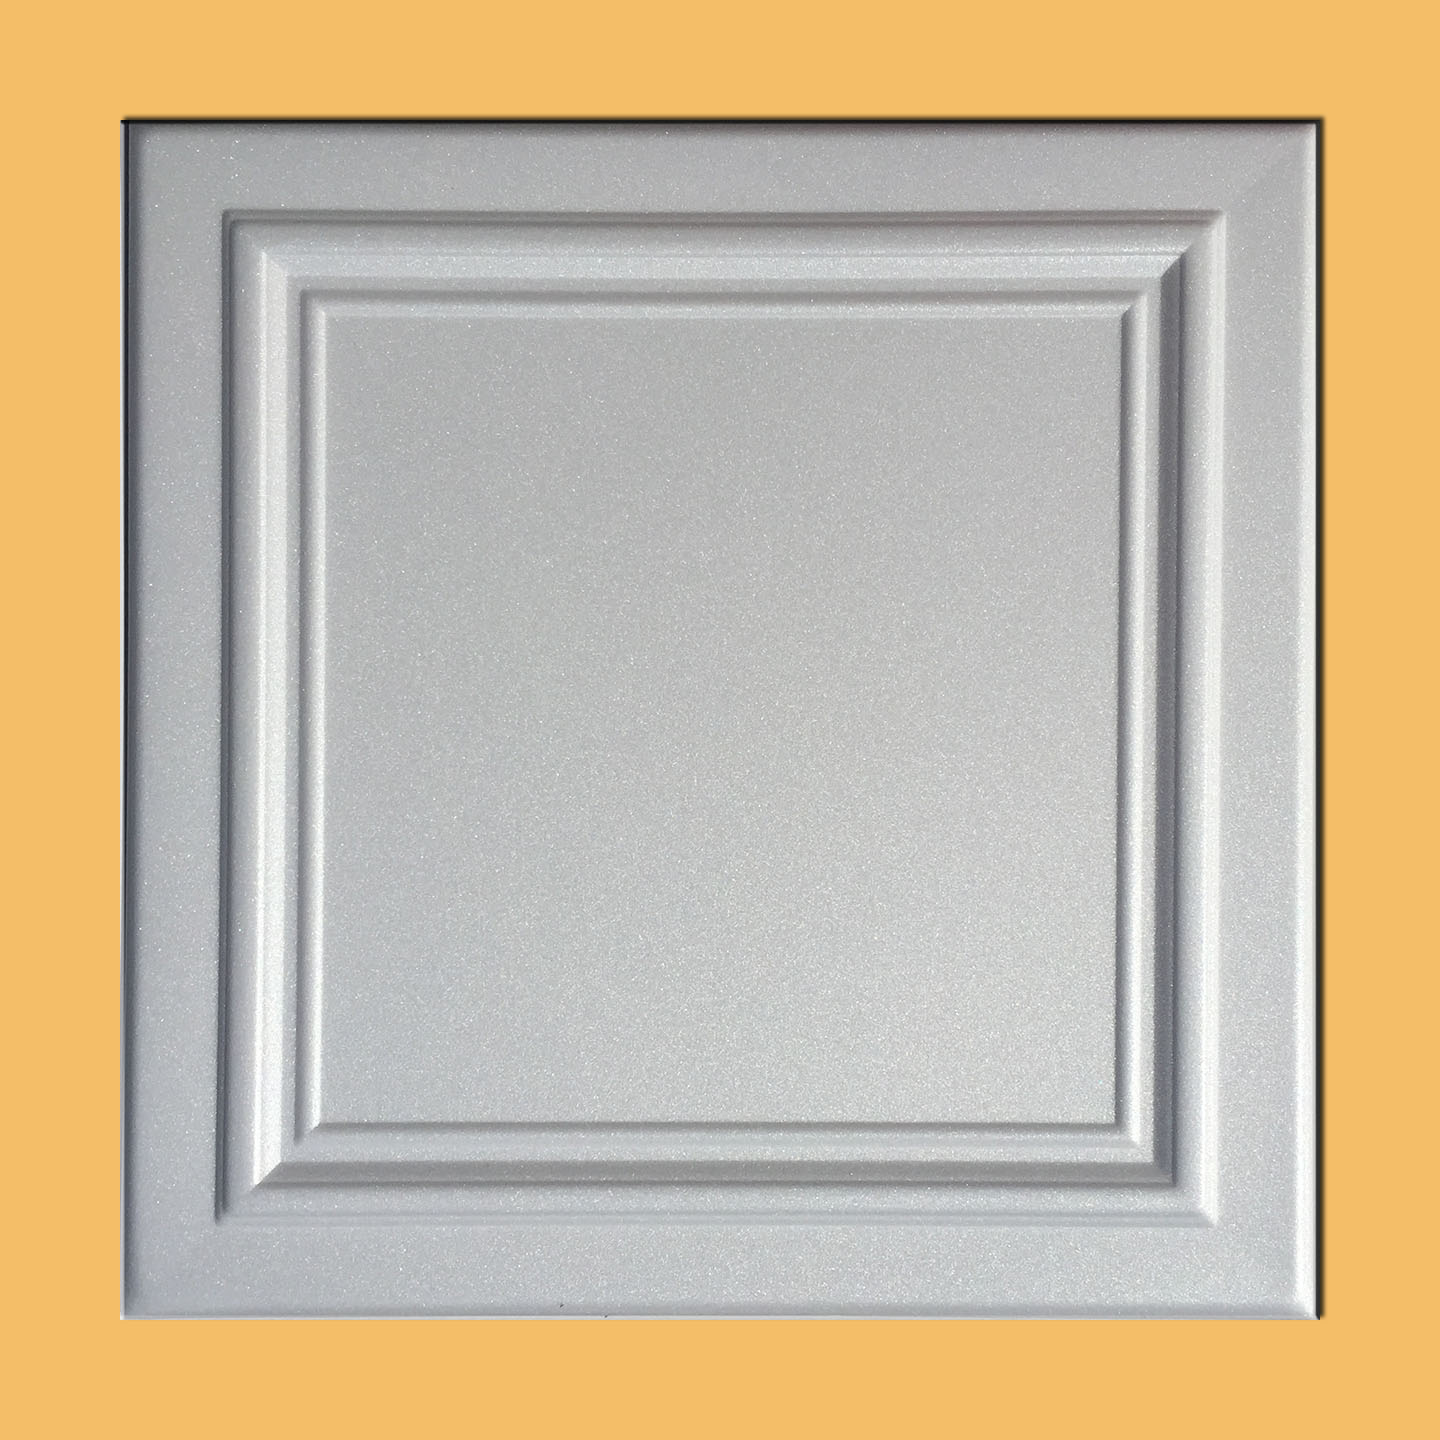 20x20 zeta white tile ceiling tiles available 050918 antique 20x20 zeta white tile ceiling tiles available 050918 dailygadgetfo Images